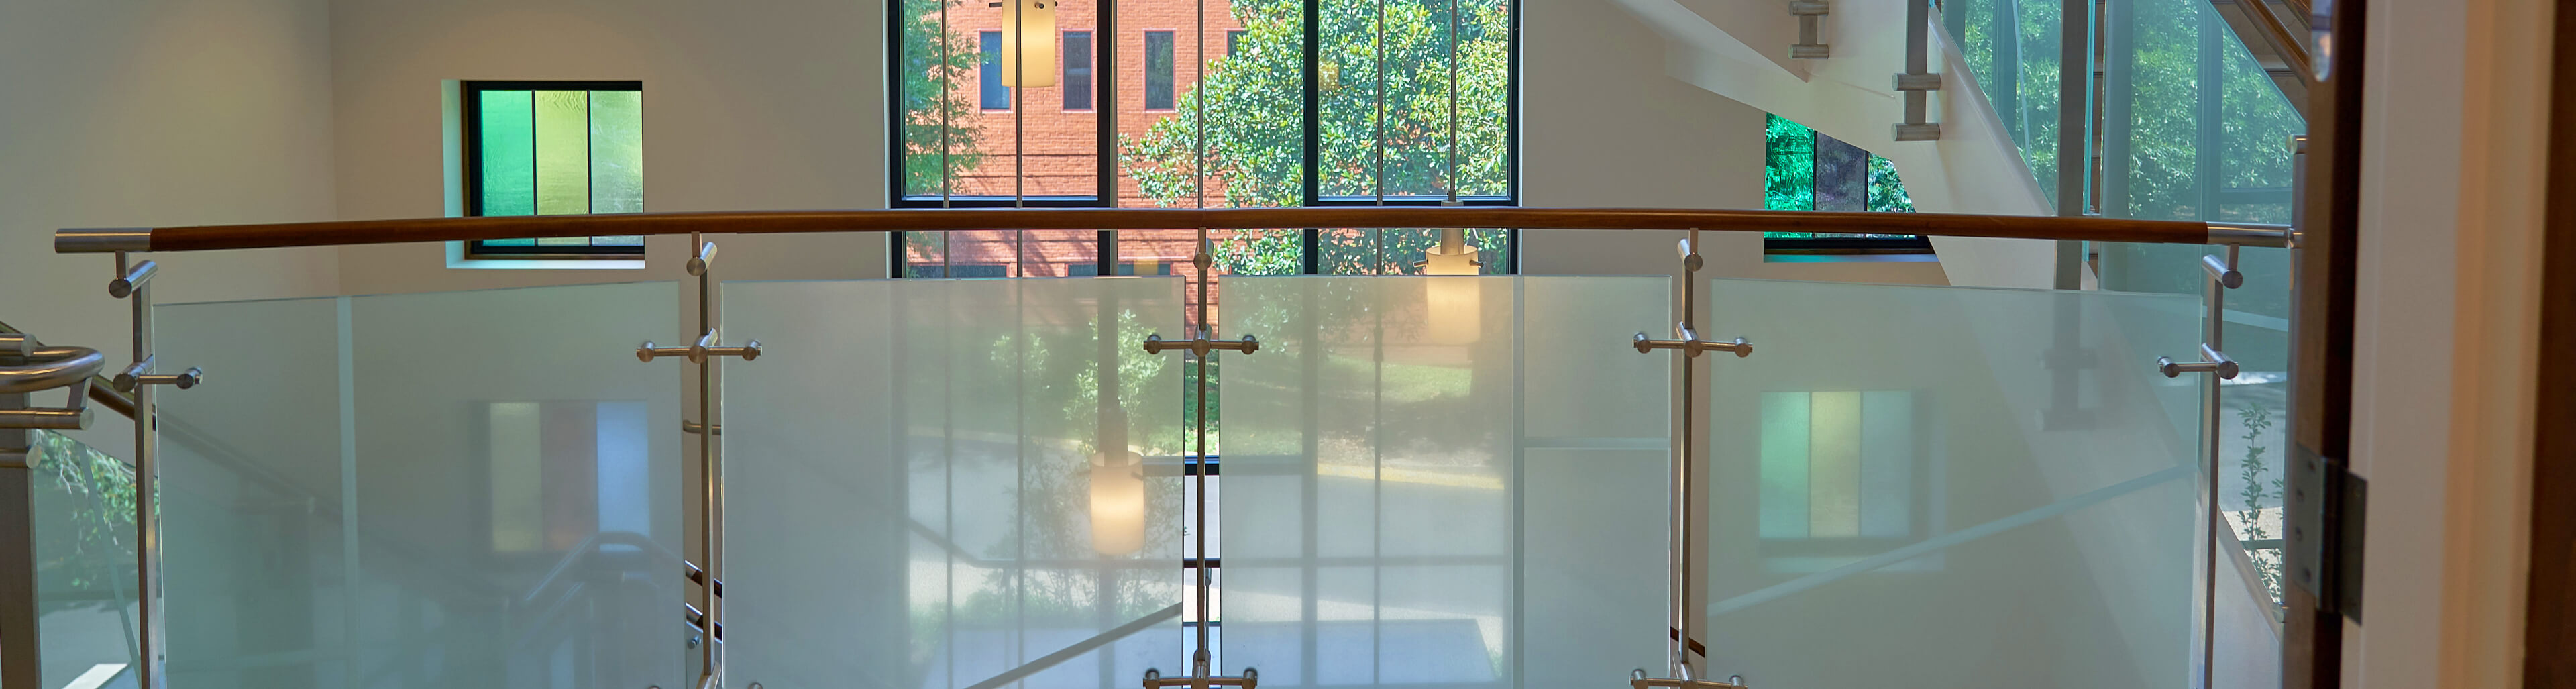 Vanderbilt Divinity School selects Kubit railing for the main staircase